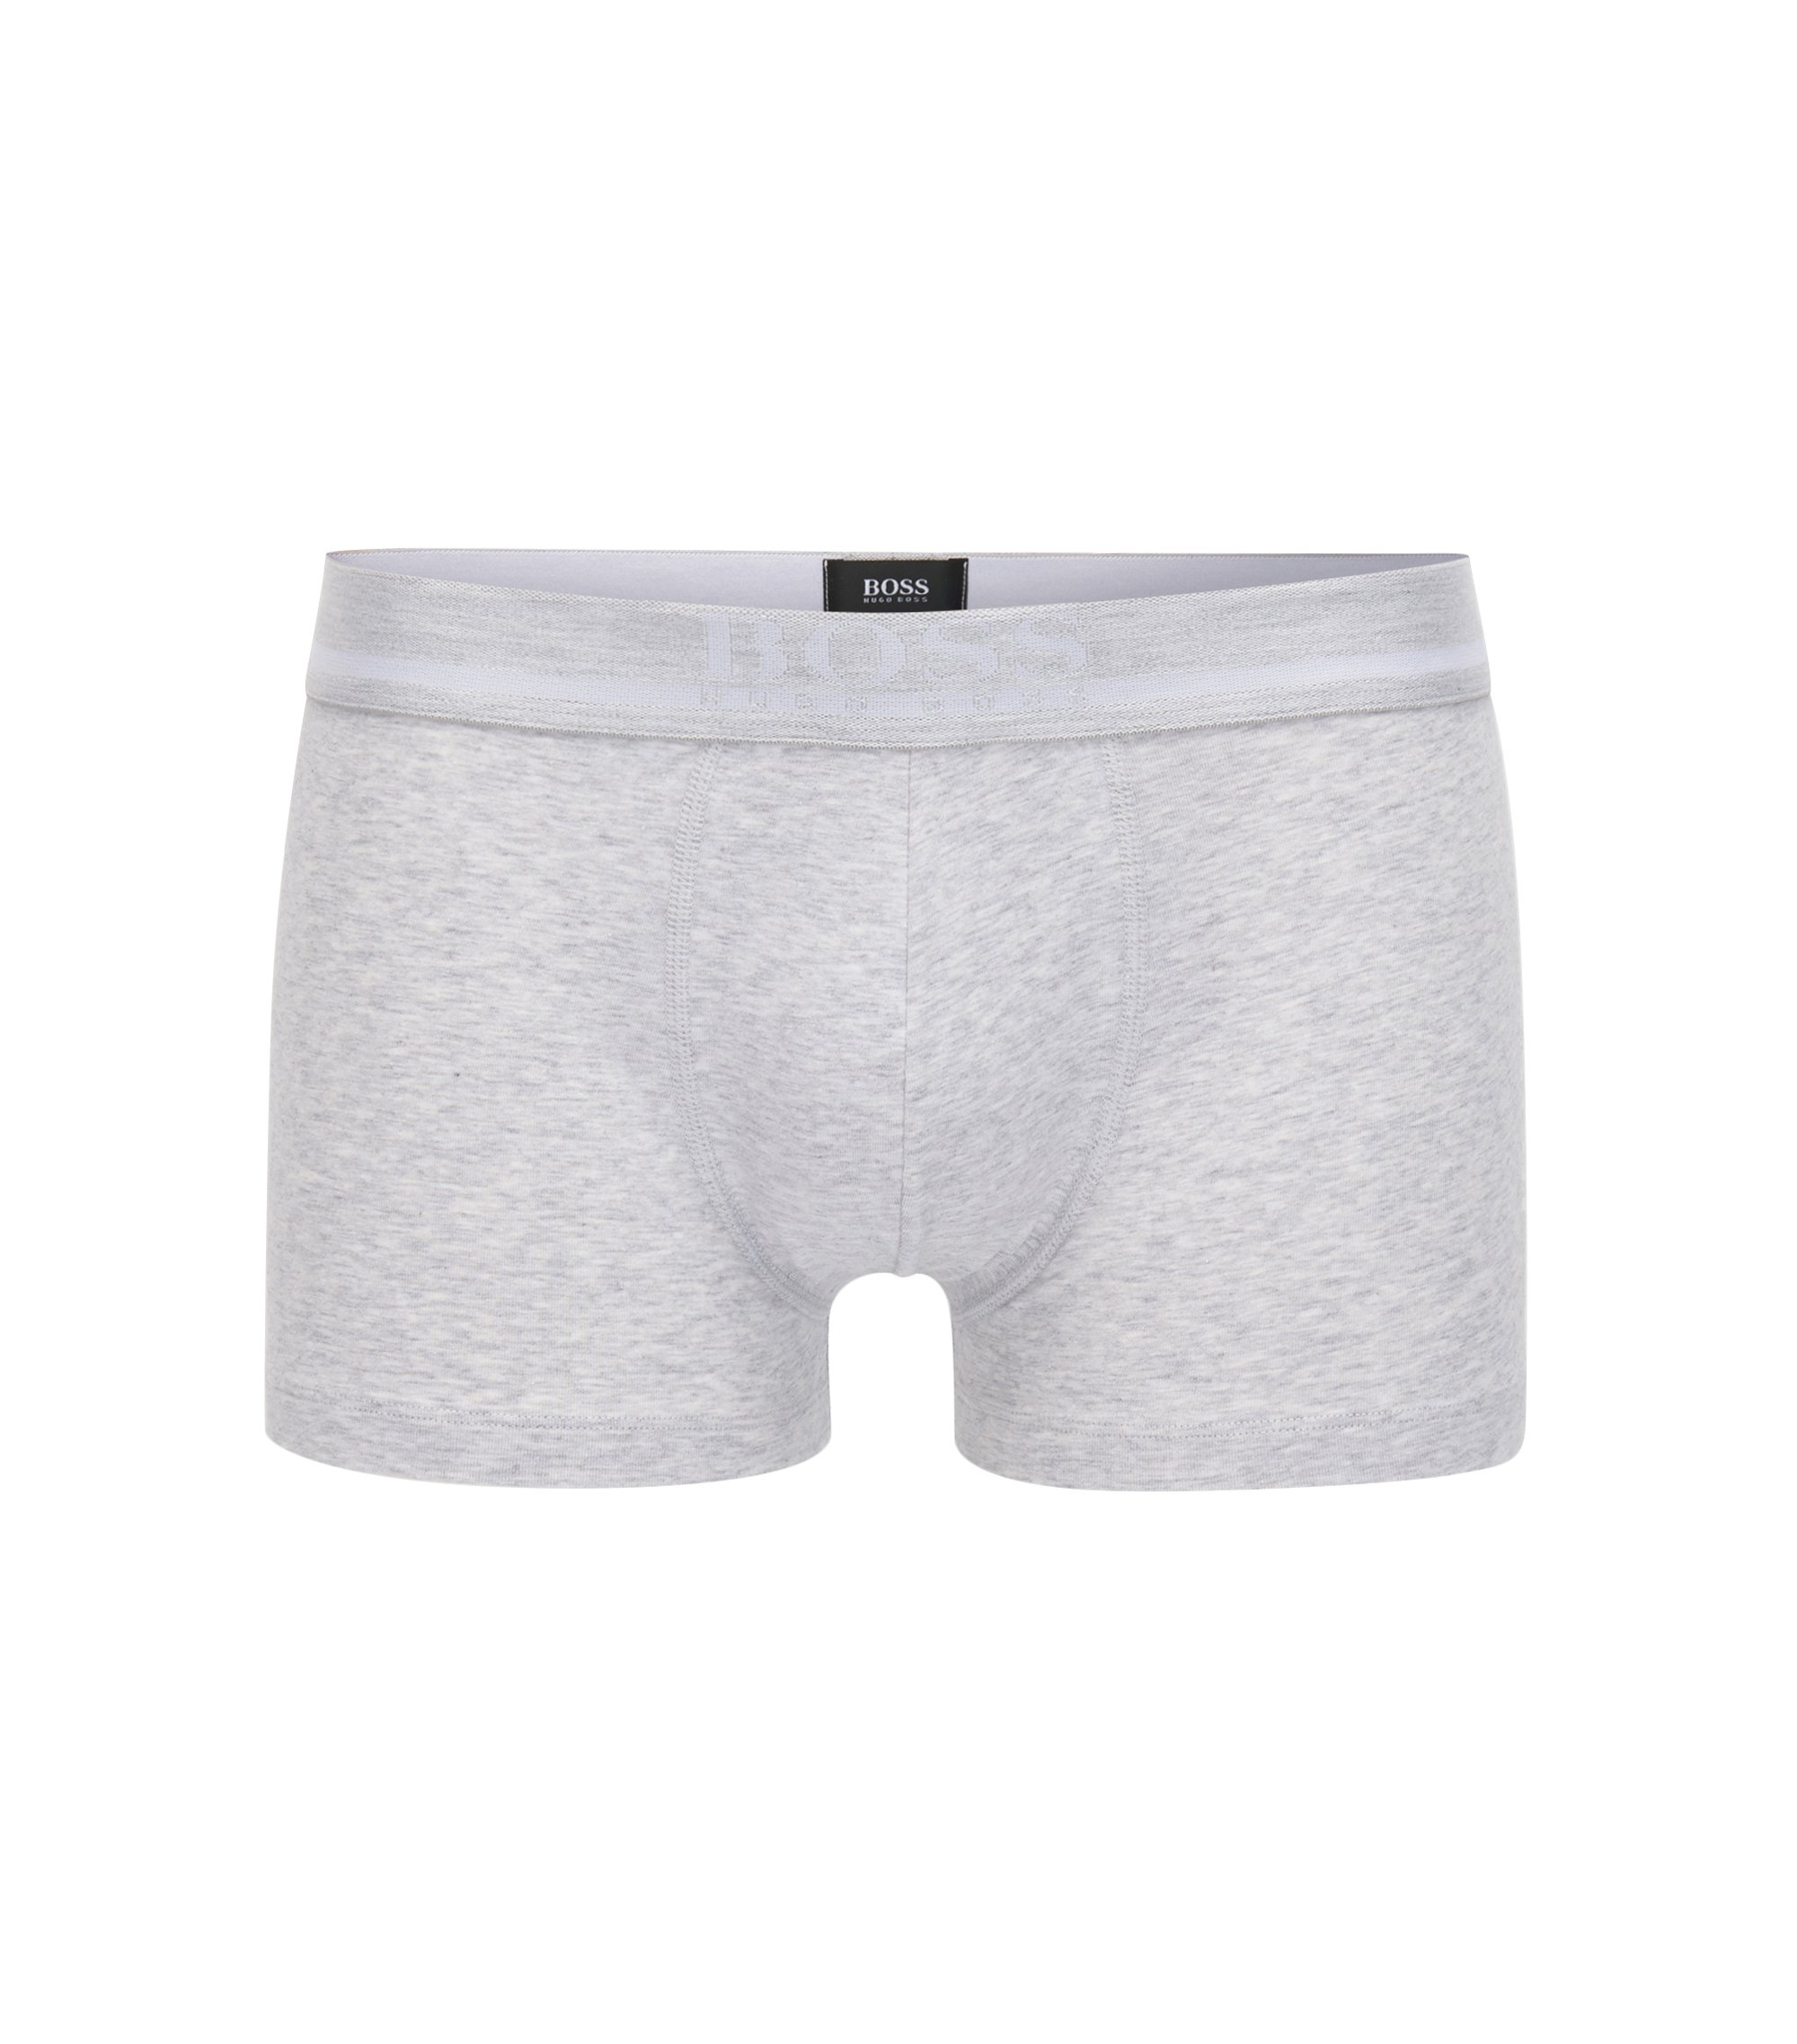 Straight-cut boxer-briefs with jacquard logo, Silver